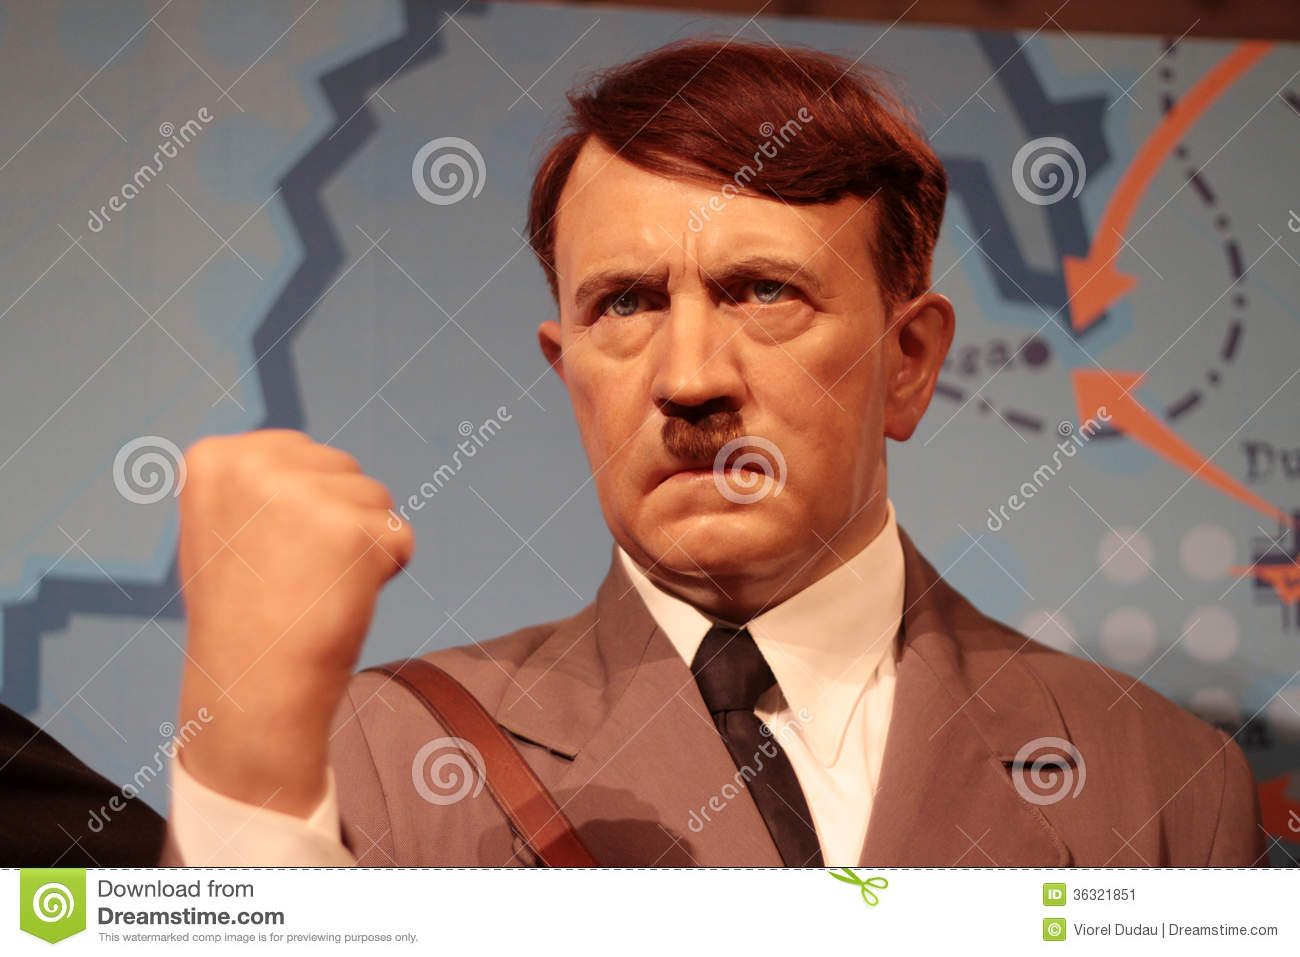 Adolf Hitler wax statue at Madame Tussauds in London.